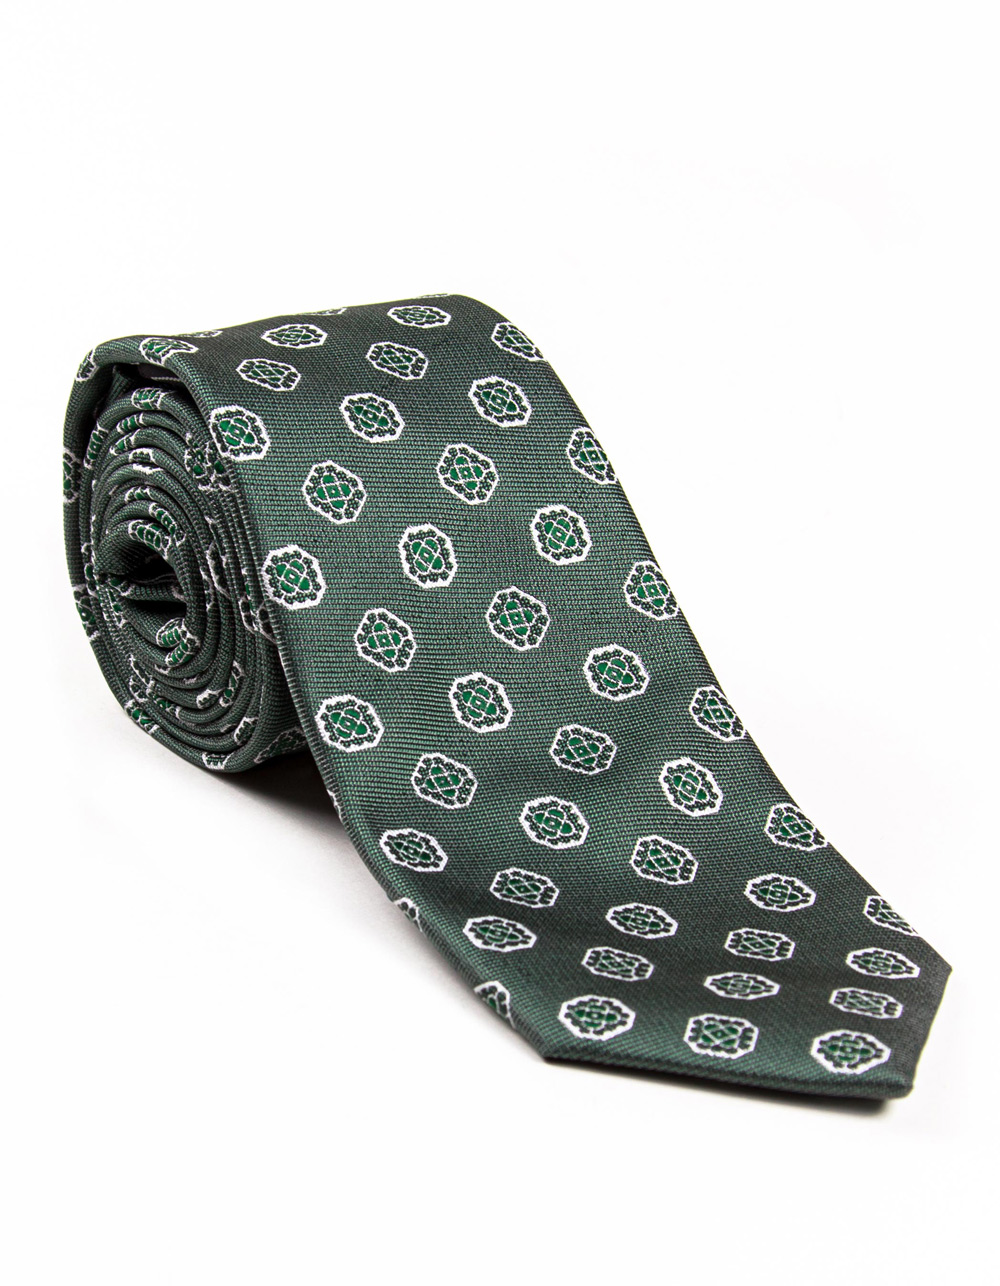 Green and white fantasy tie